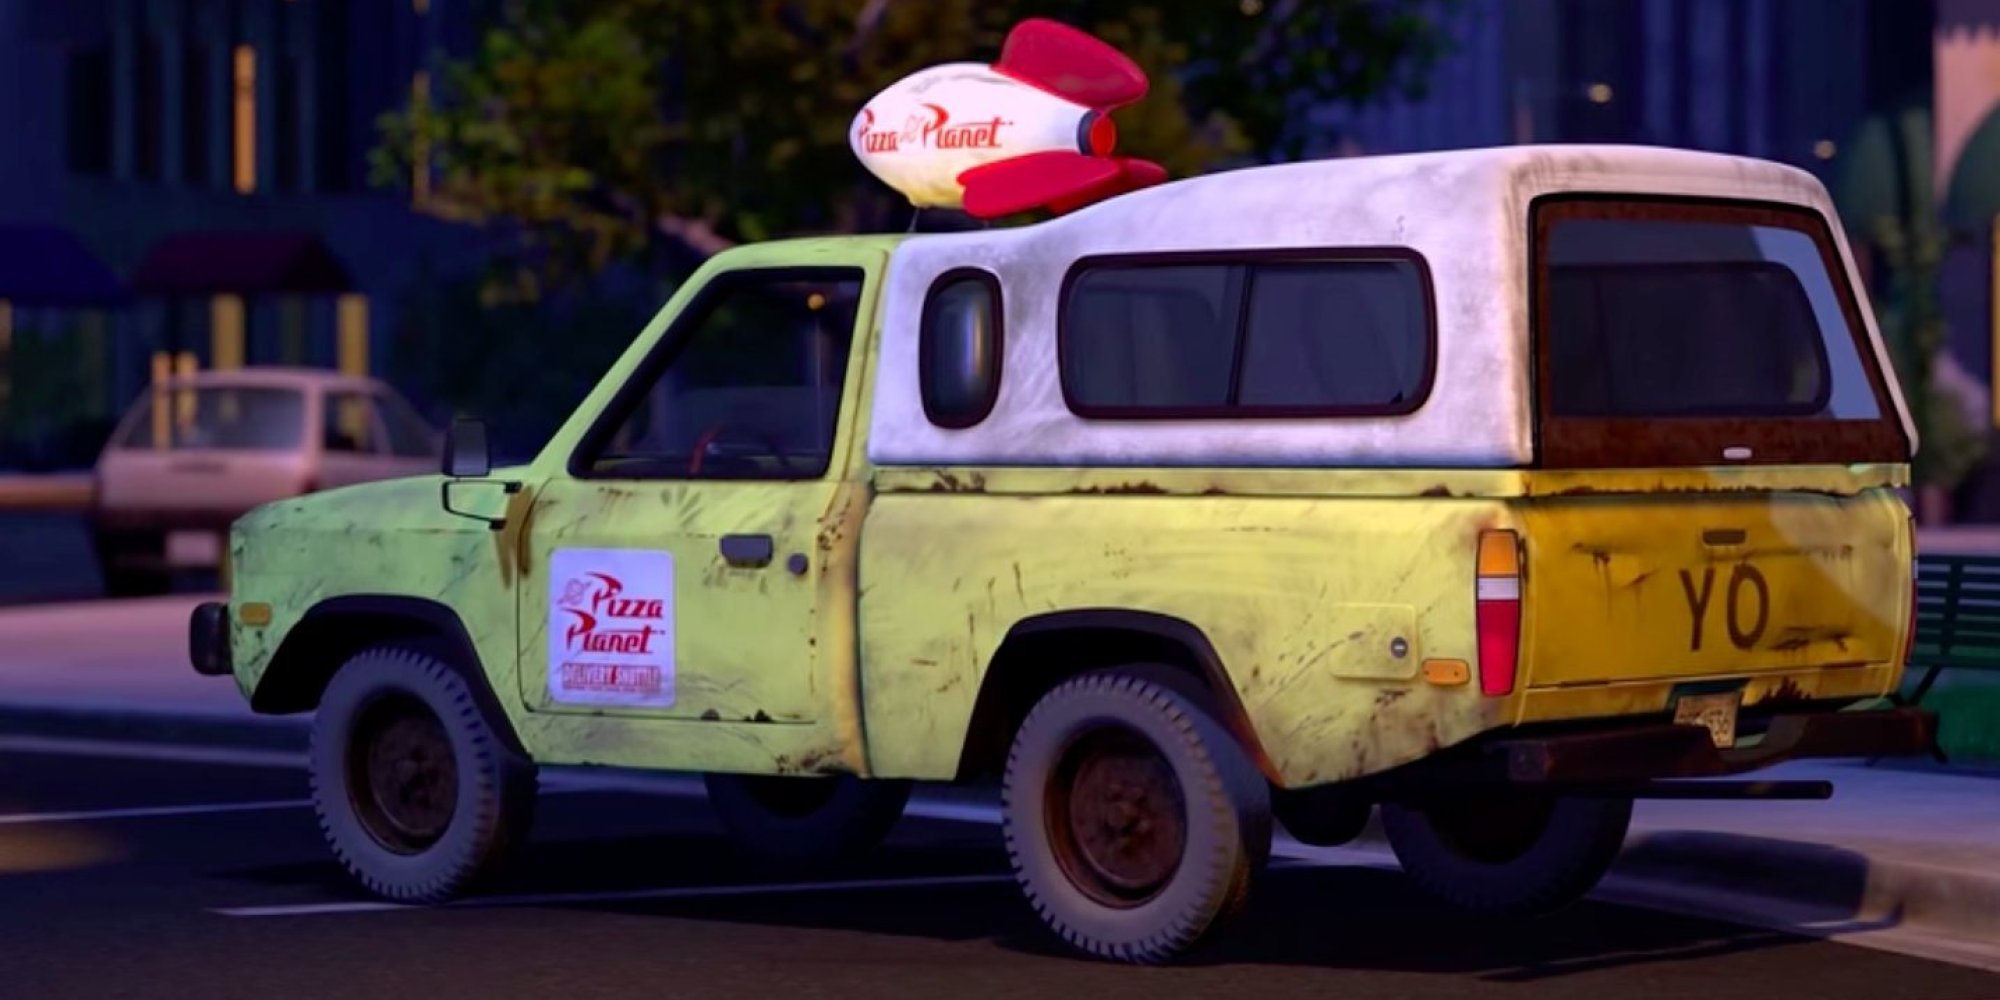 Brad Bird Addresses The Missing Pizza Planet Truck In 'The ...